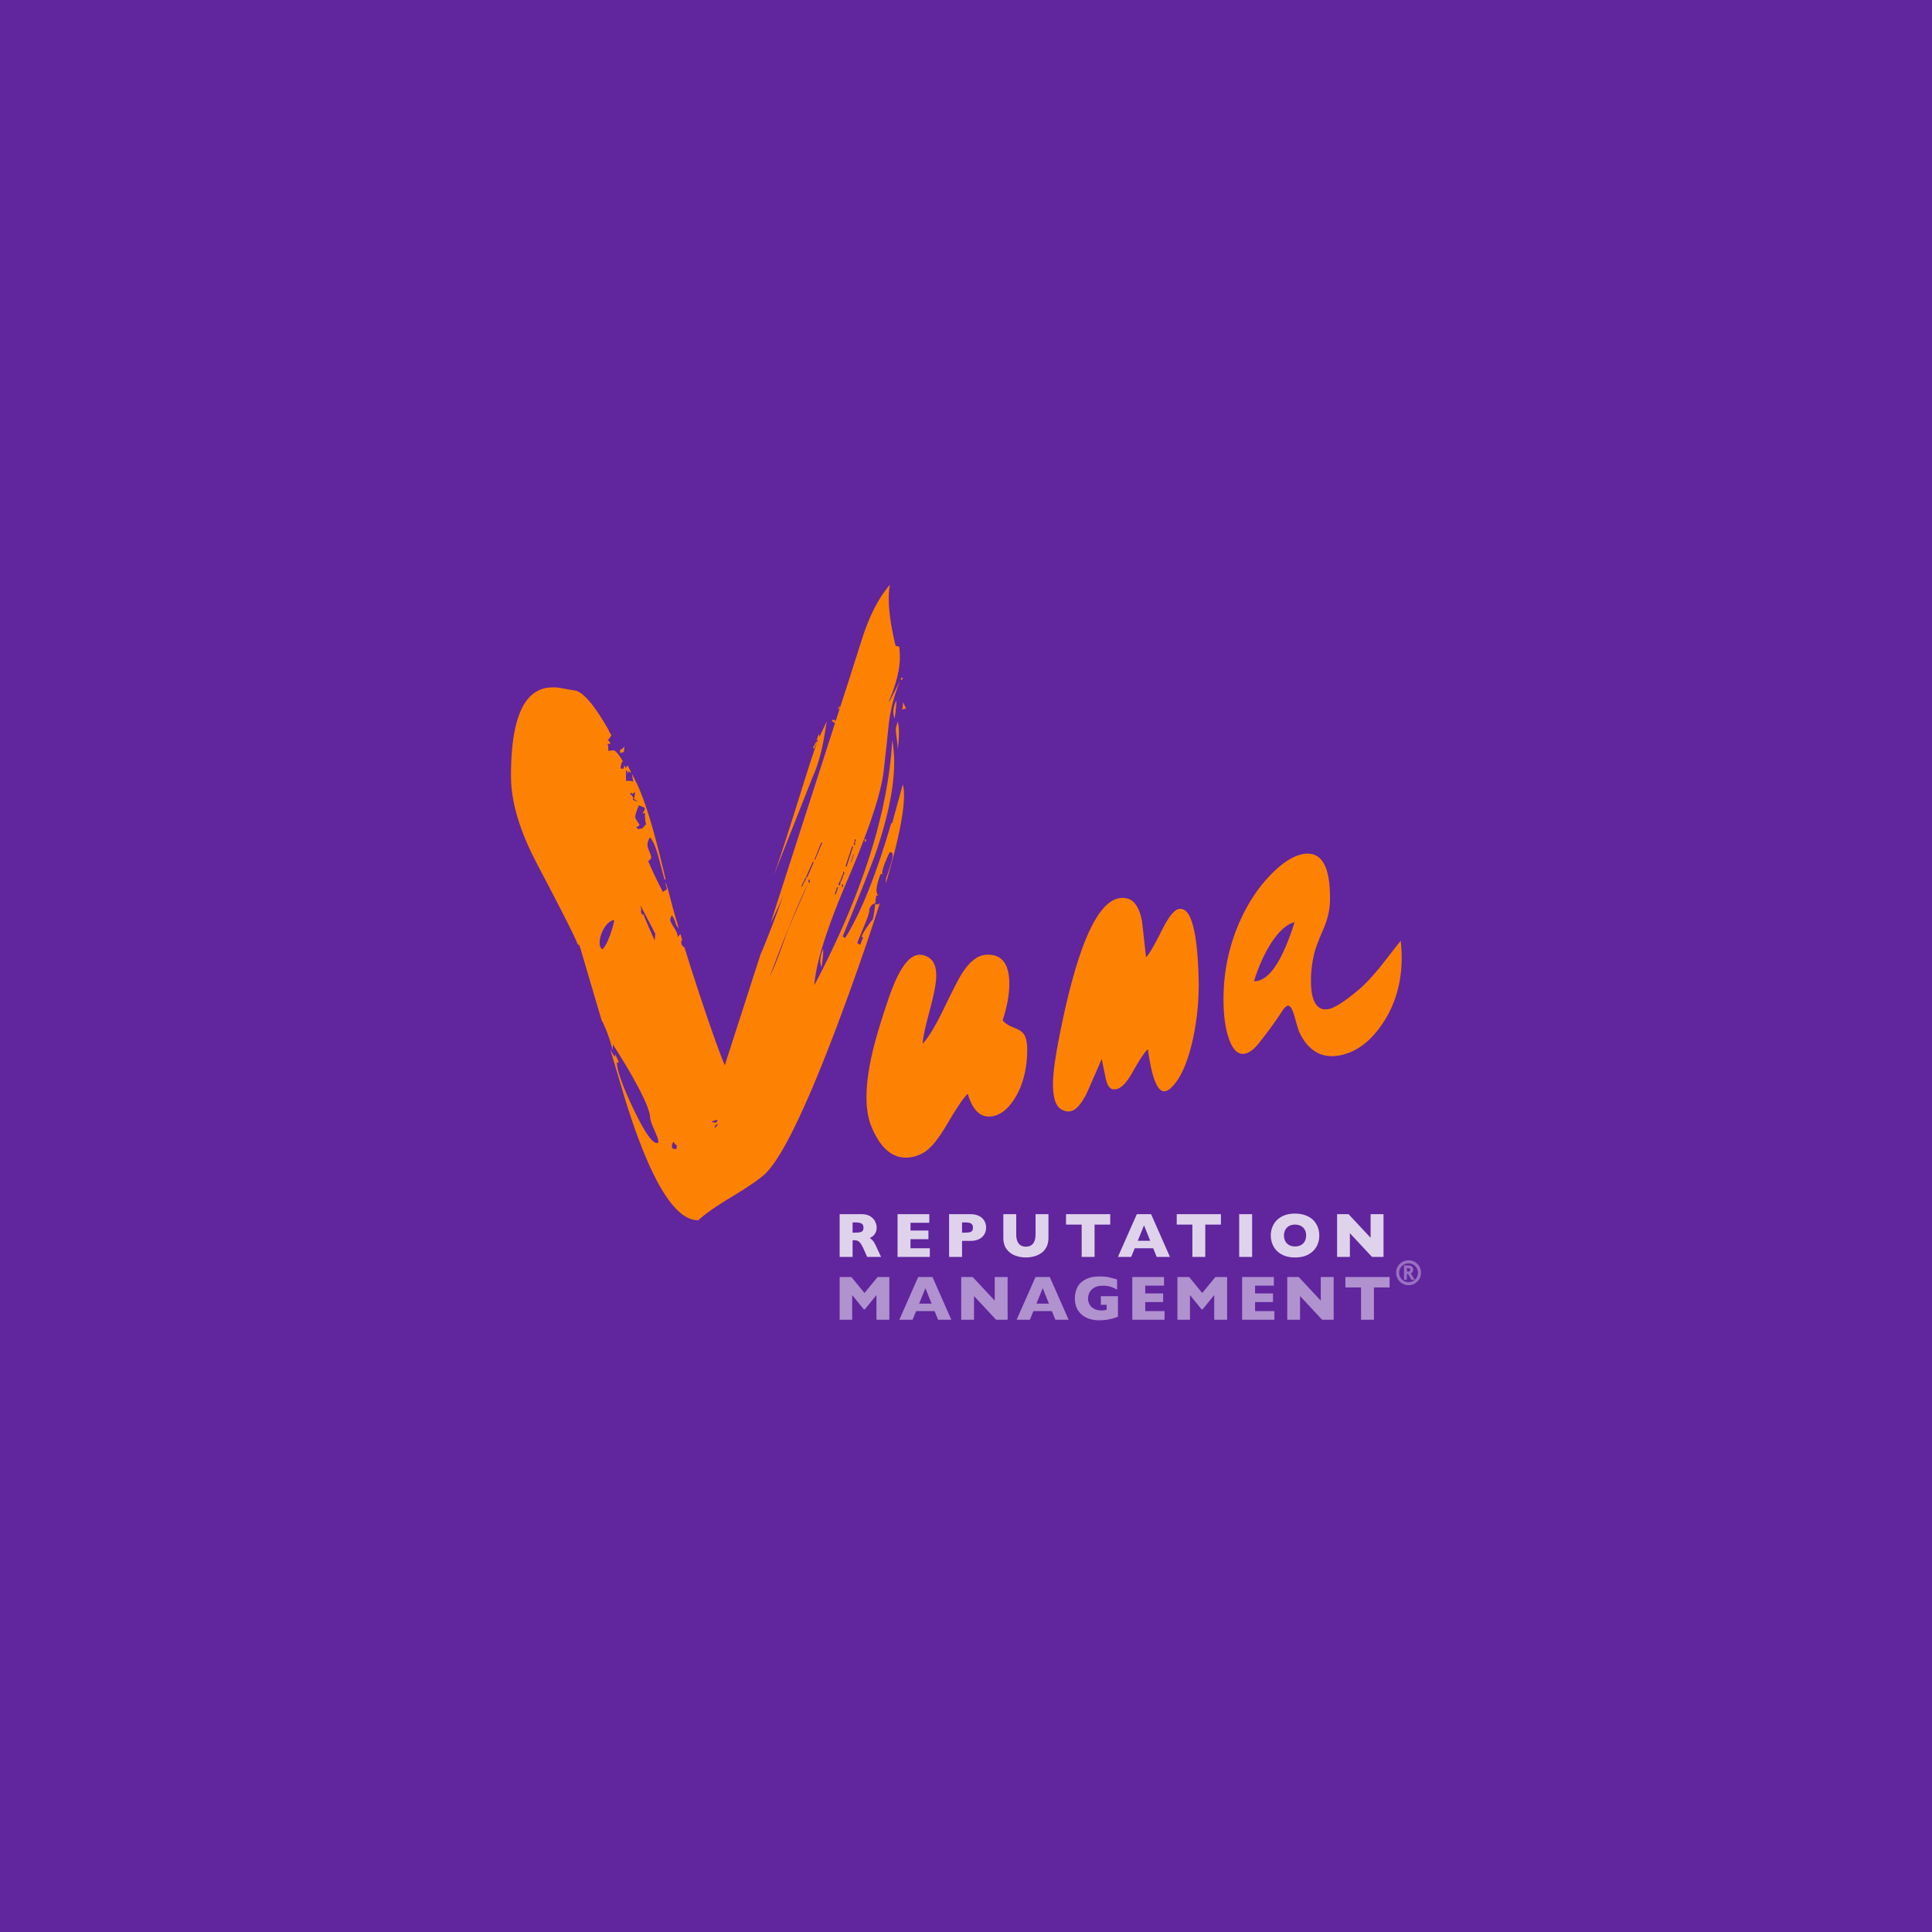 New leadership to take Vuma Reputation Management into the next stage of growth